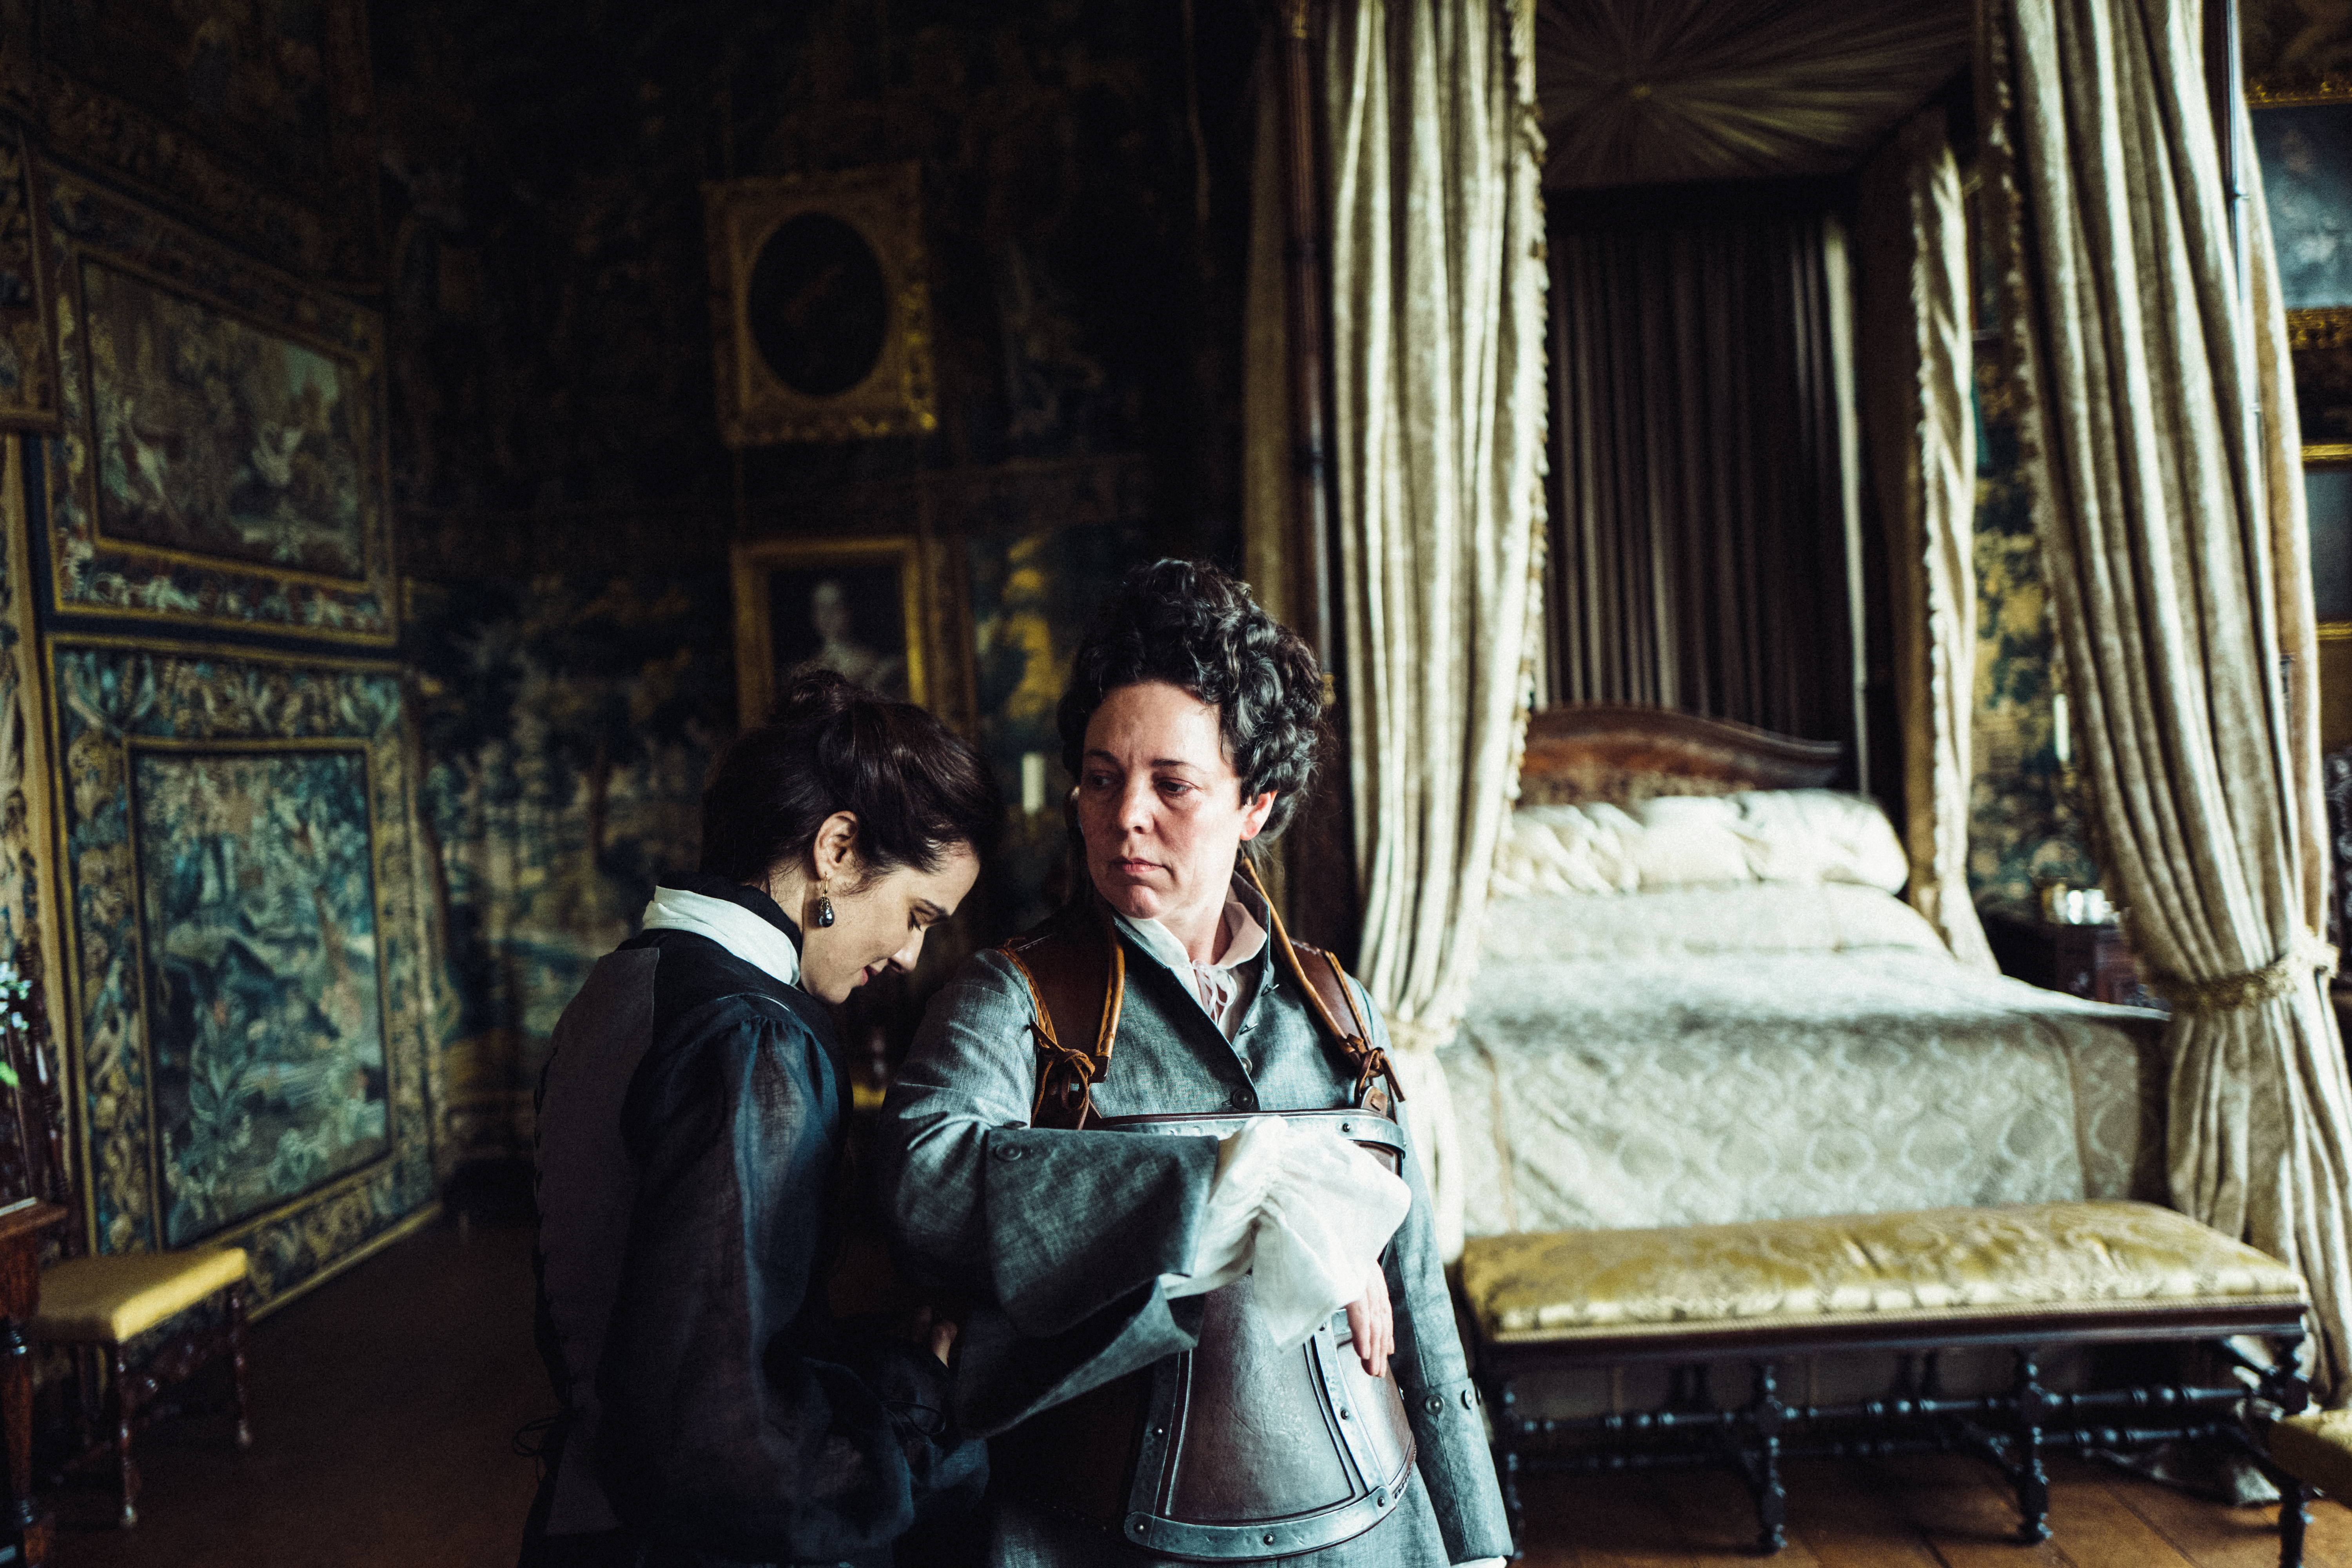 Rachel Weisz and Olivia Colman in the film THE FAVOURITE. Photo by Yorgos Lanthimos. © 2018 Twentieth Century Fox Film Corporation